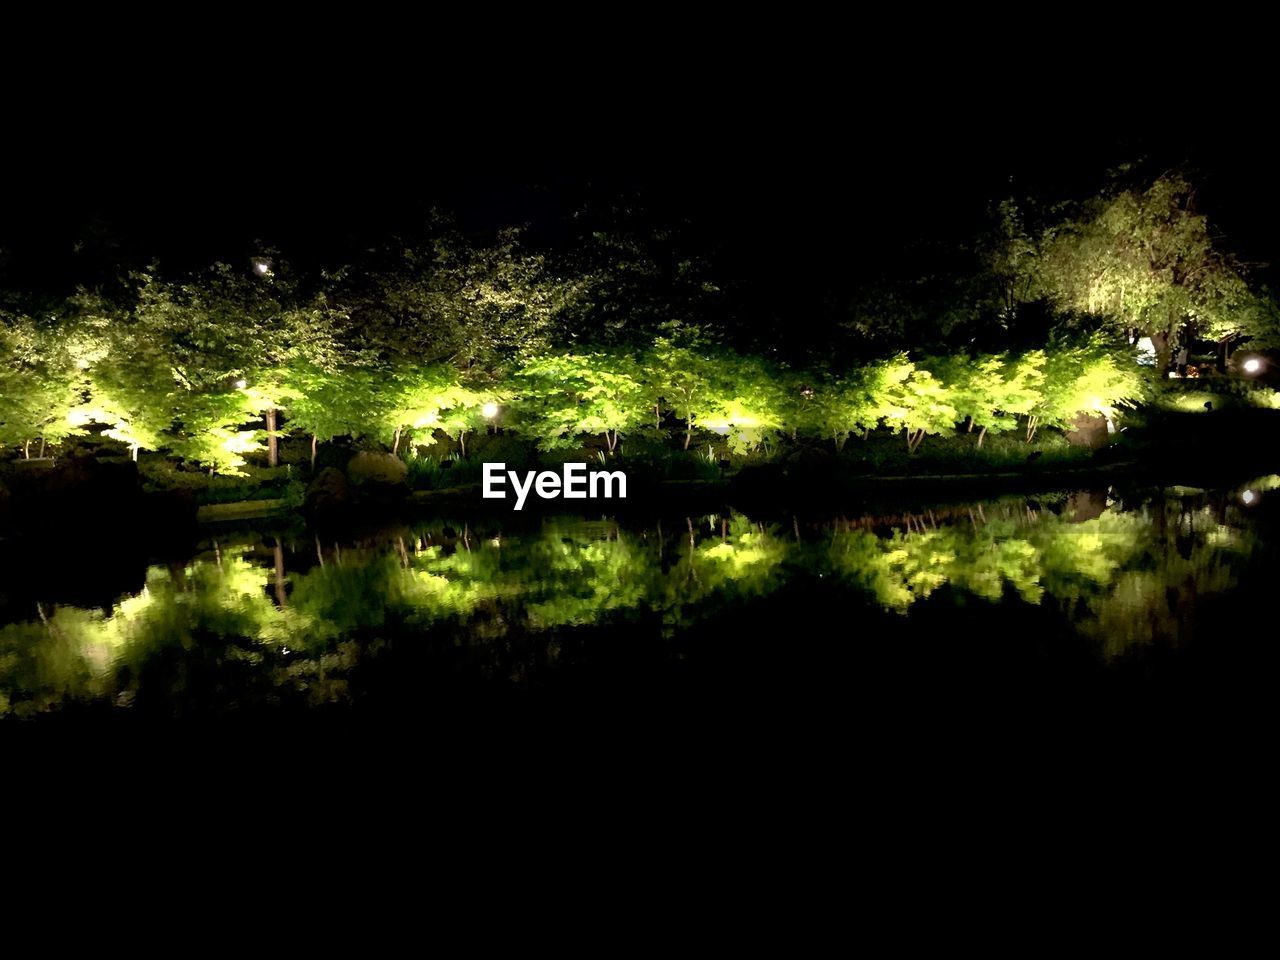 reflection, water, tree, lake, nature, no people, outdoors, beauty in nature, tranquility, growth, scenics, night, illuminated